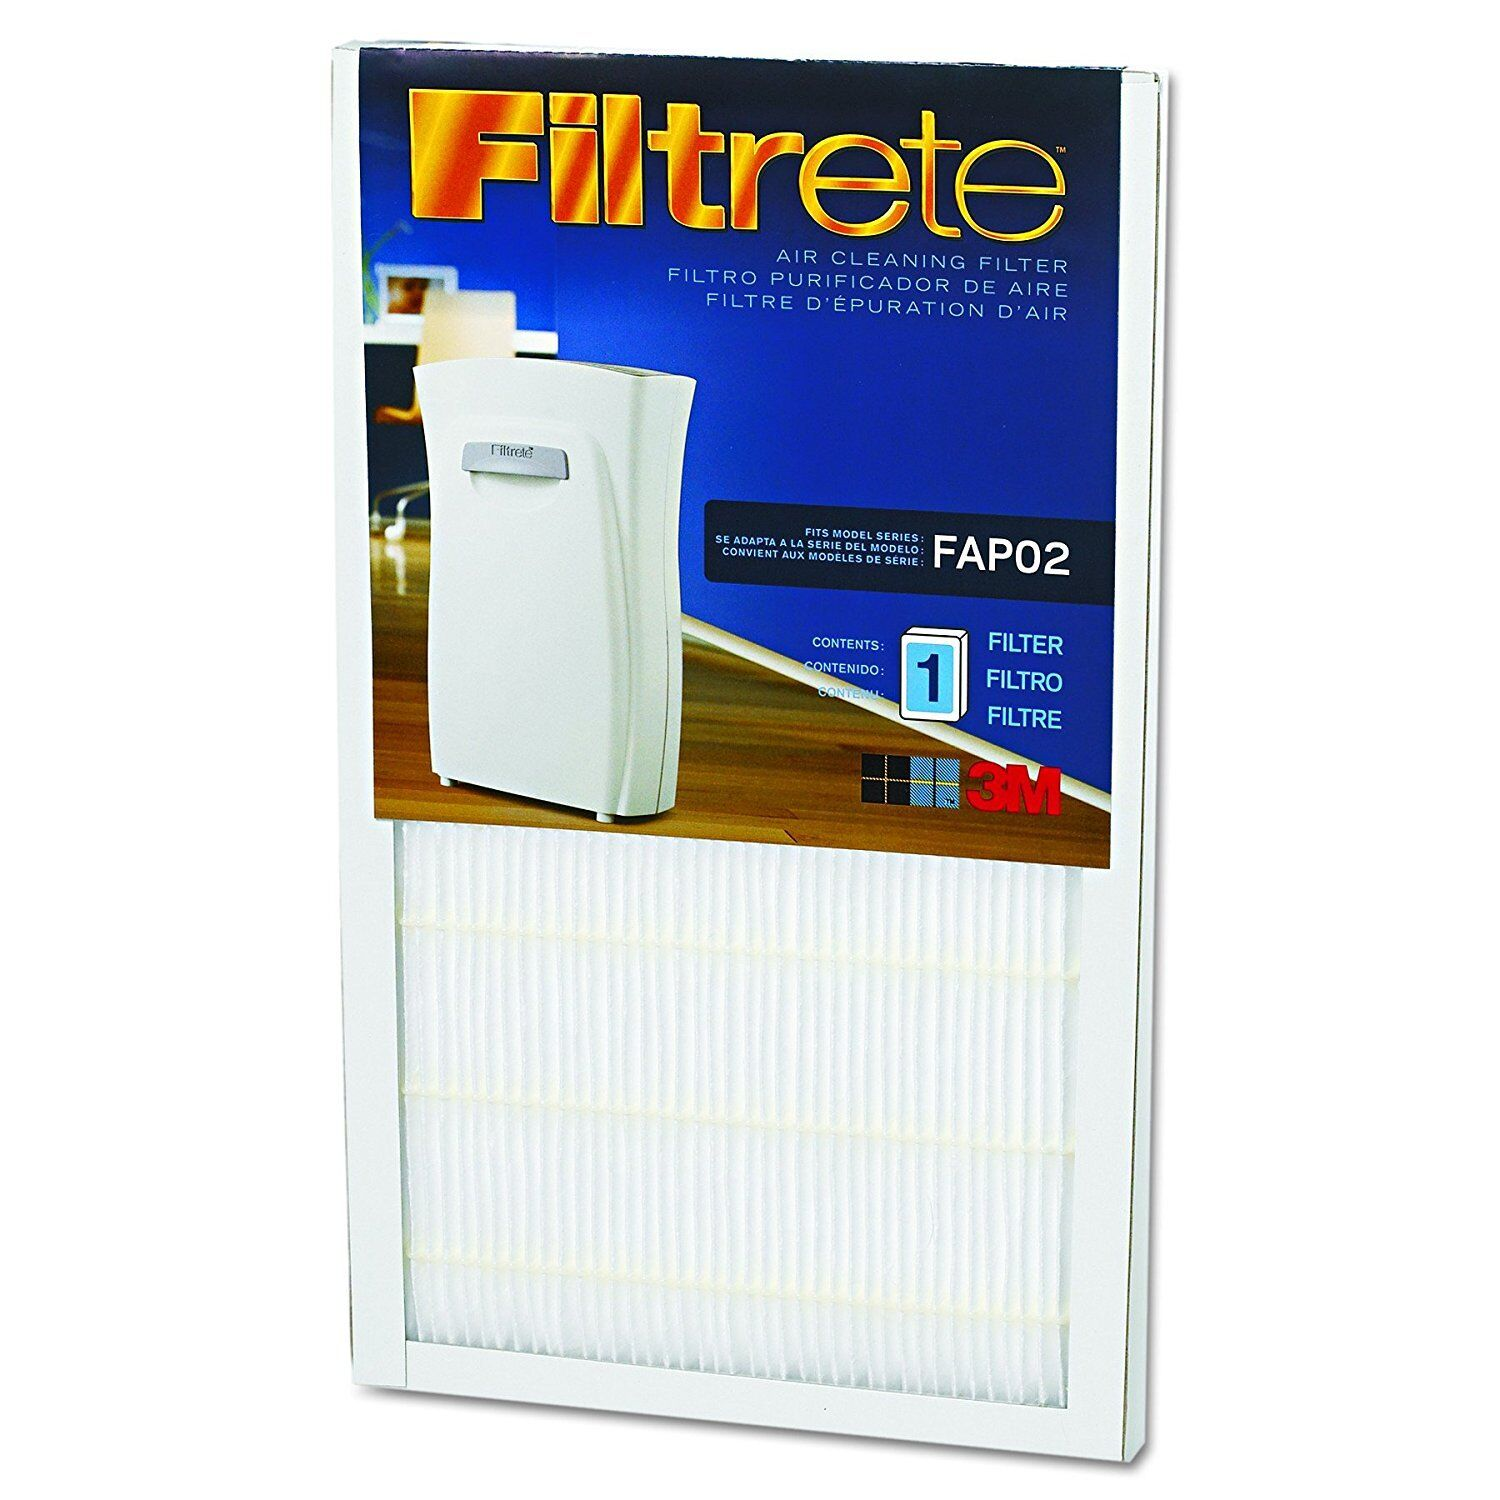 Filtrete 3M HEPA Filters pair Model FAP01 and FAP02, new, wrapped